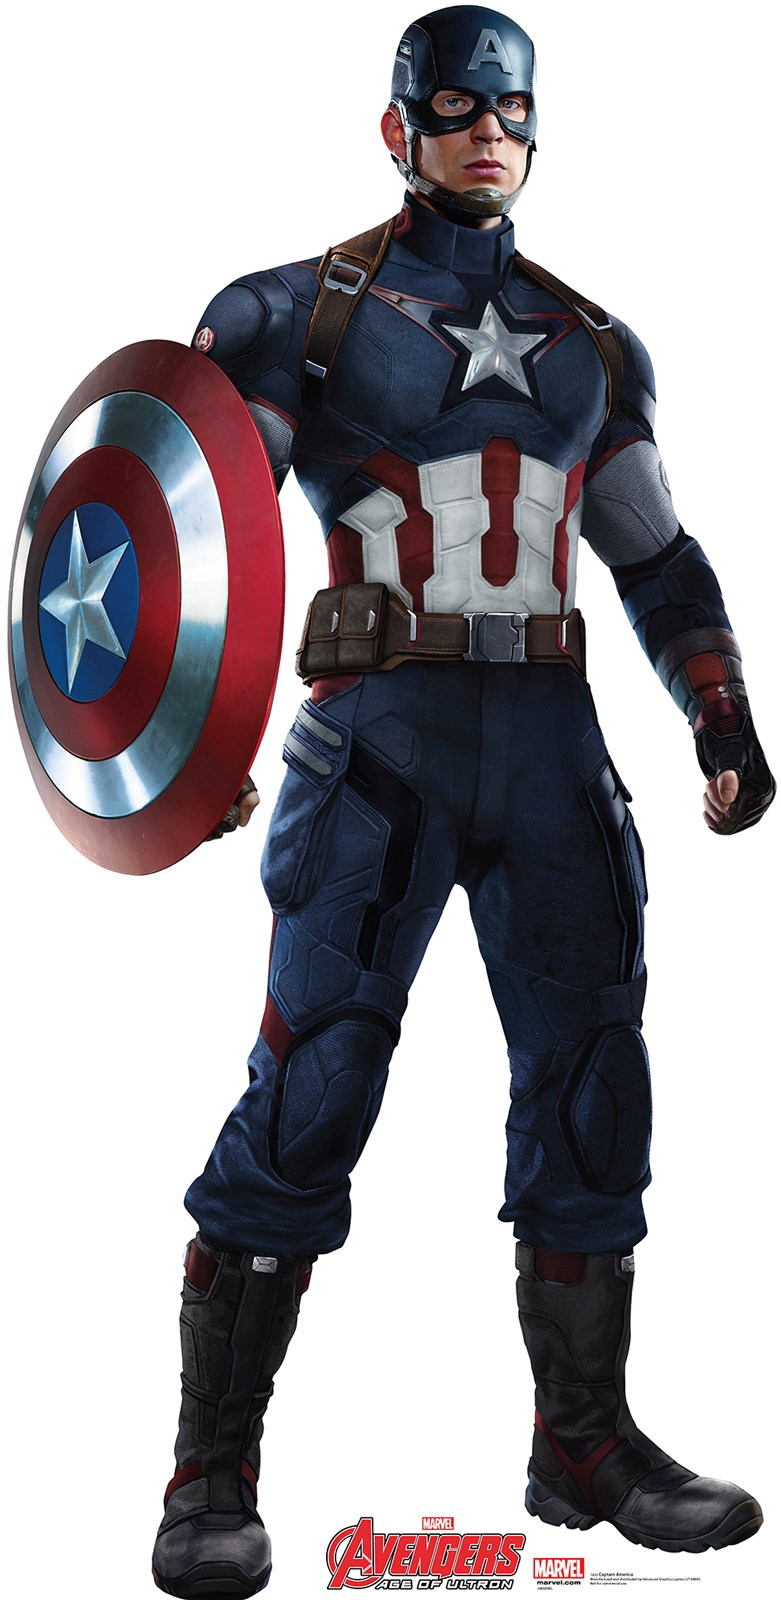 Avengers Age of Ultron Captain America Standup - 6 Tall